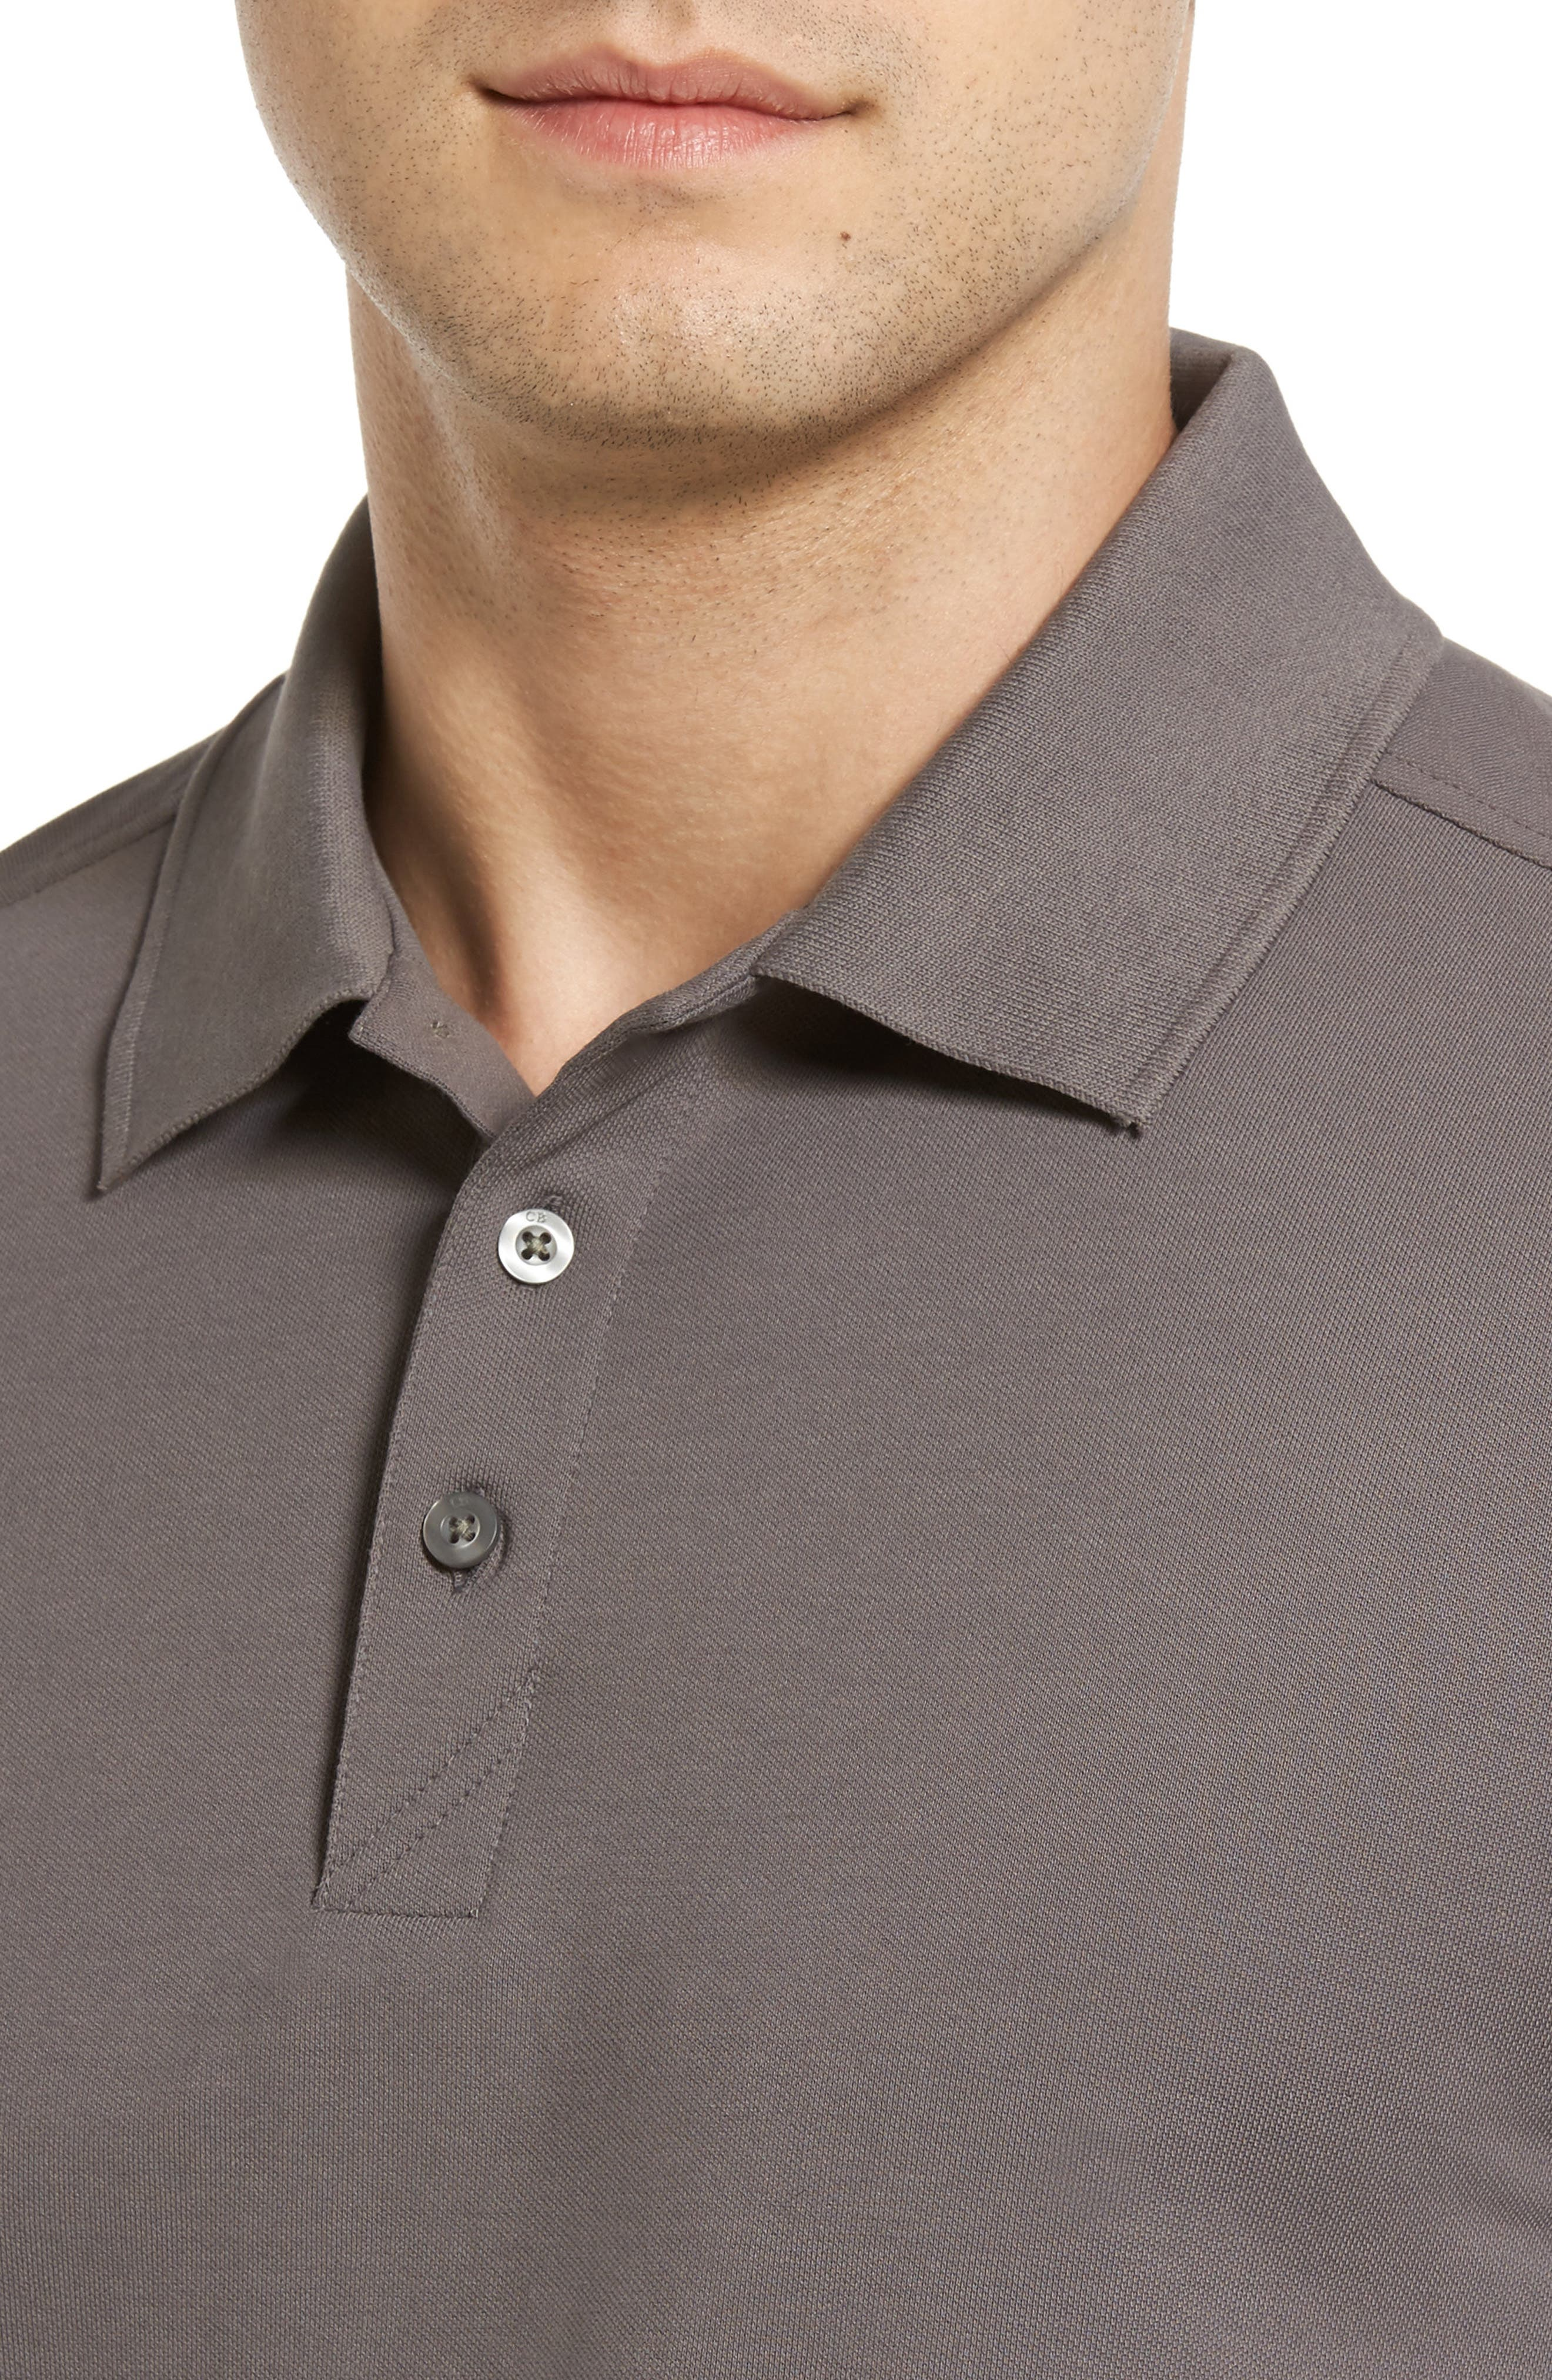 CUTTER & BUCK, Advantage Golf Polo, Alternate thumbnail 4, color, ELEMENTAL